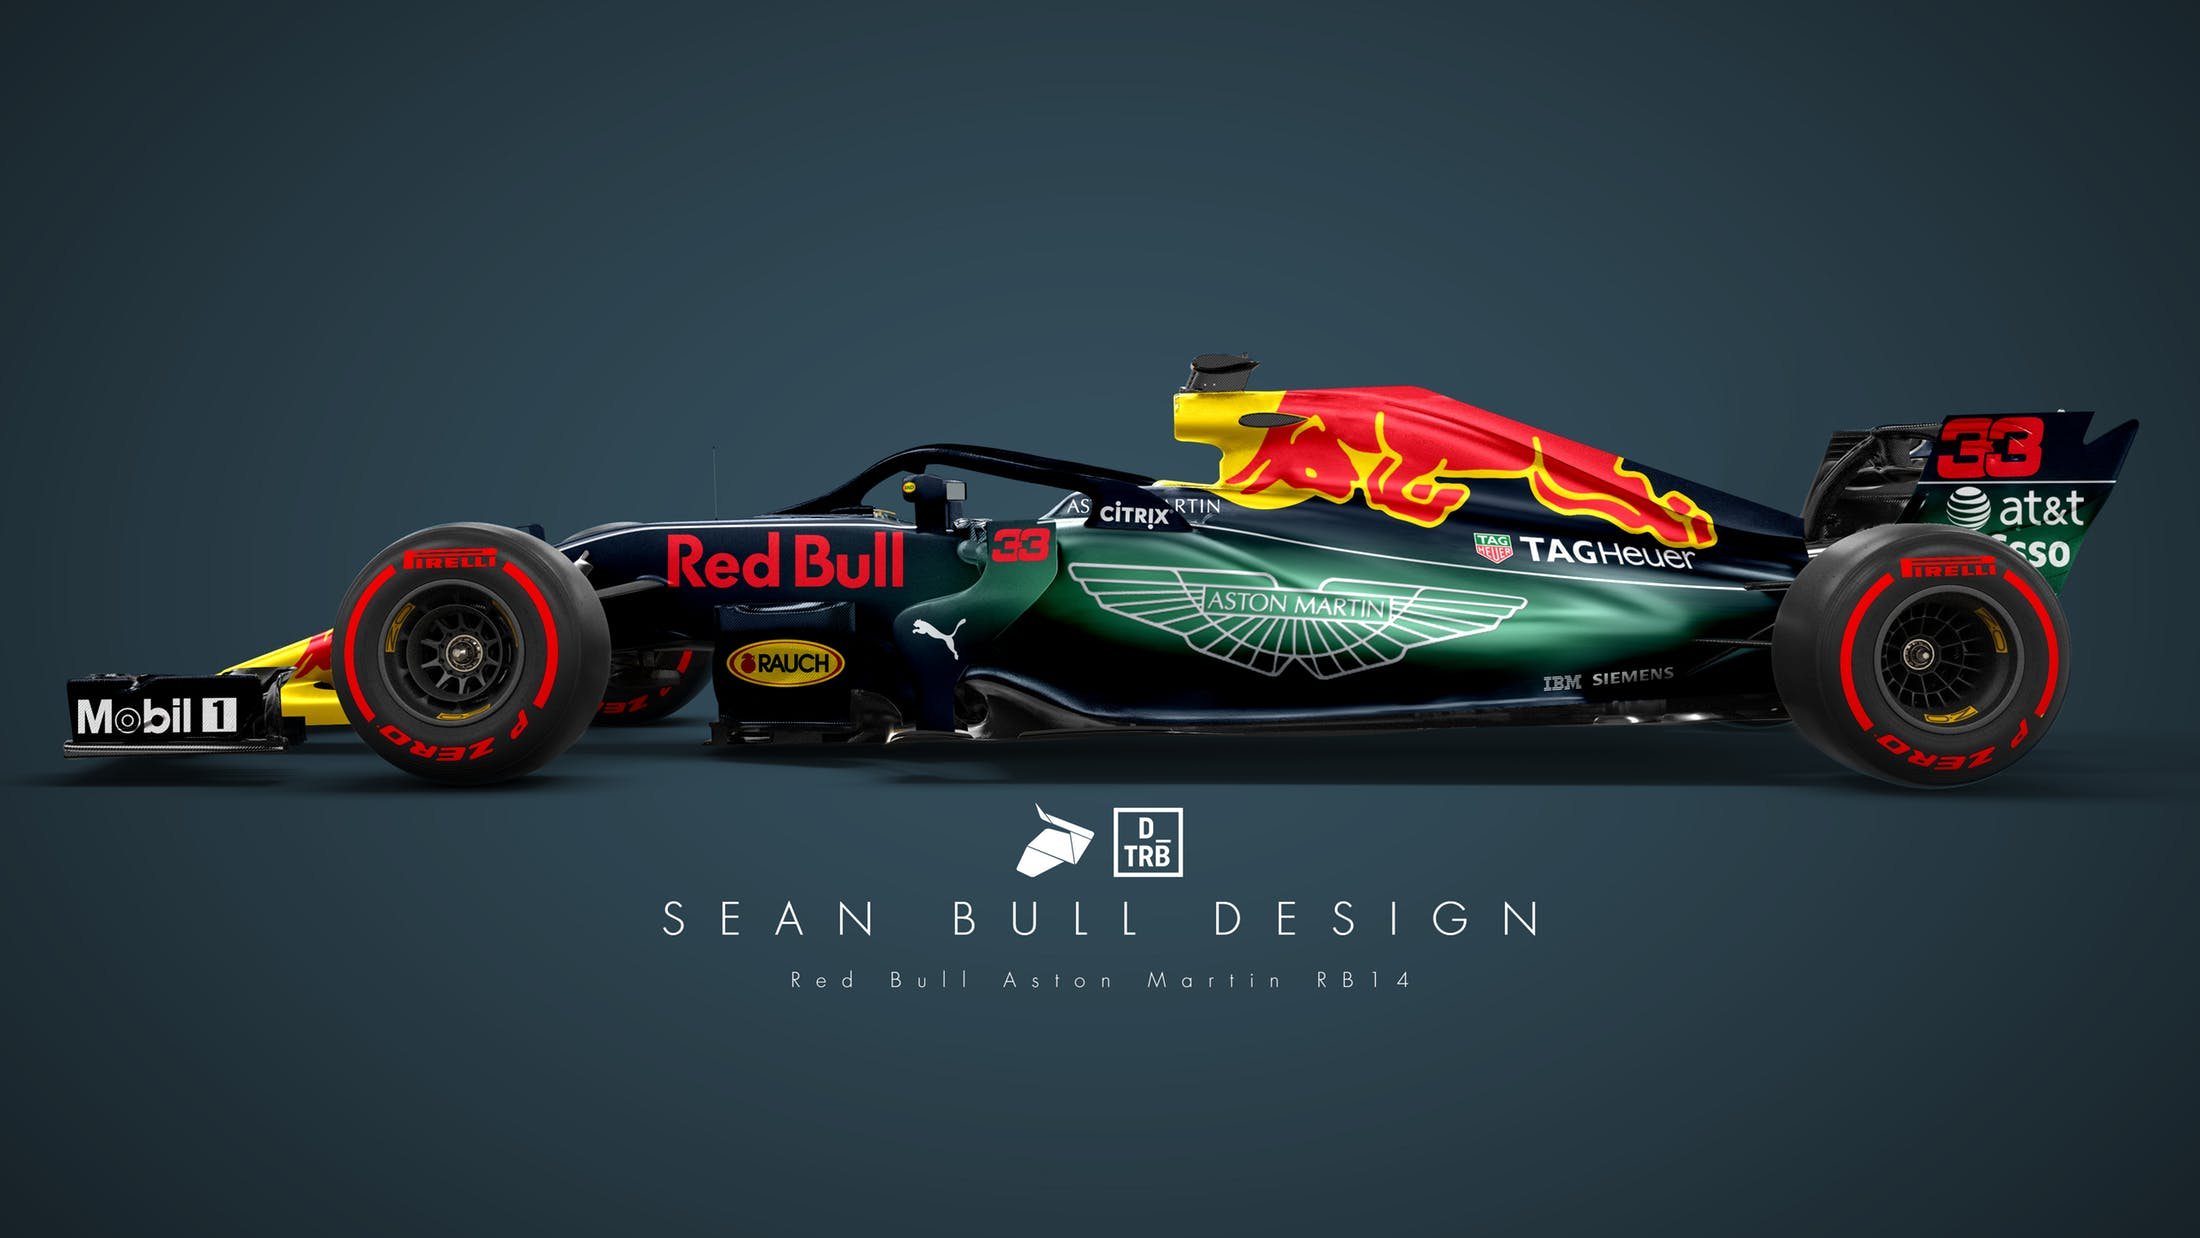 f1 aston martin red bull racing i sette ipotetici render per la vettura 2018 foto. Black Bedroom Furniture Sets. Home Design Ideas